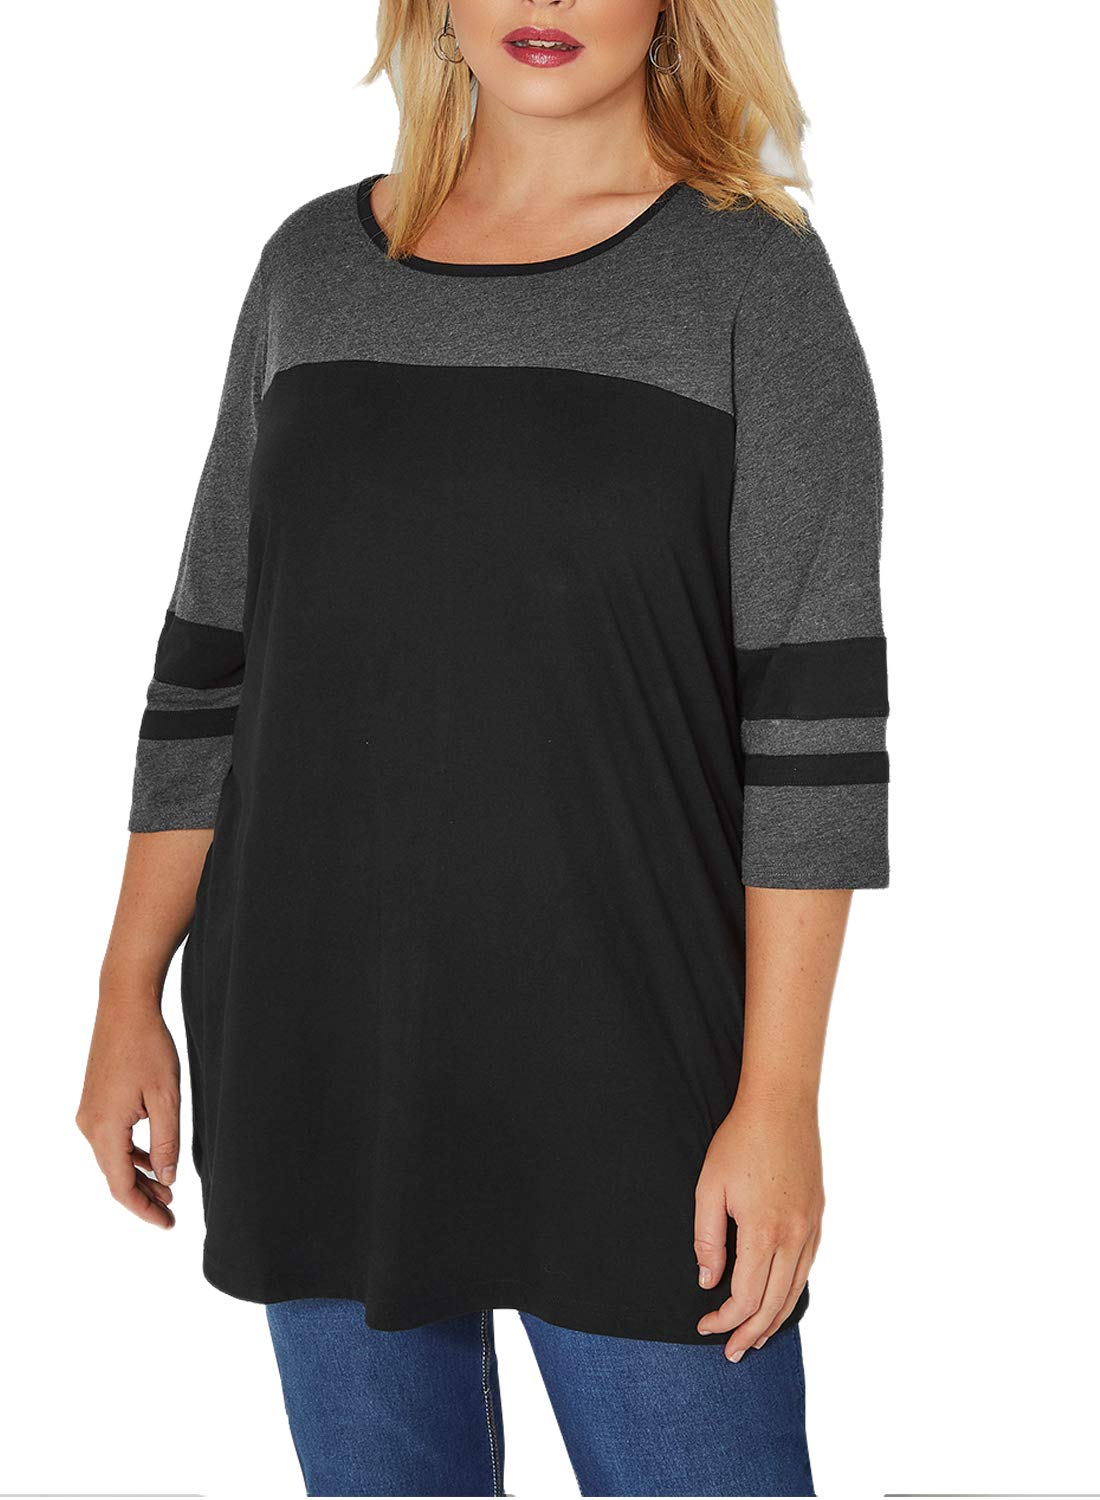 Dearlove Women's Plus Size Striped 3/4 Sleeve Color Block T Shirt Scoop Neck Casual Loose Flare Tunic Tops Blouse Black 5X